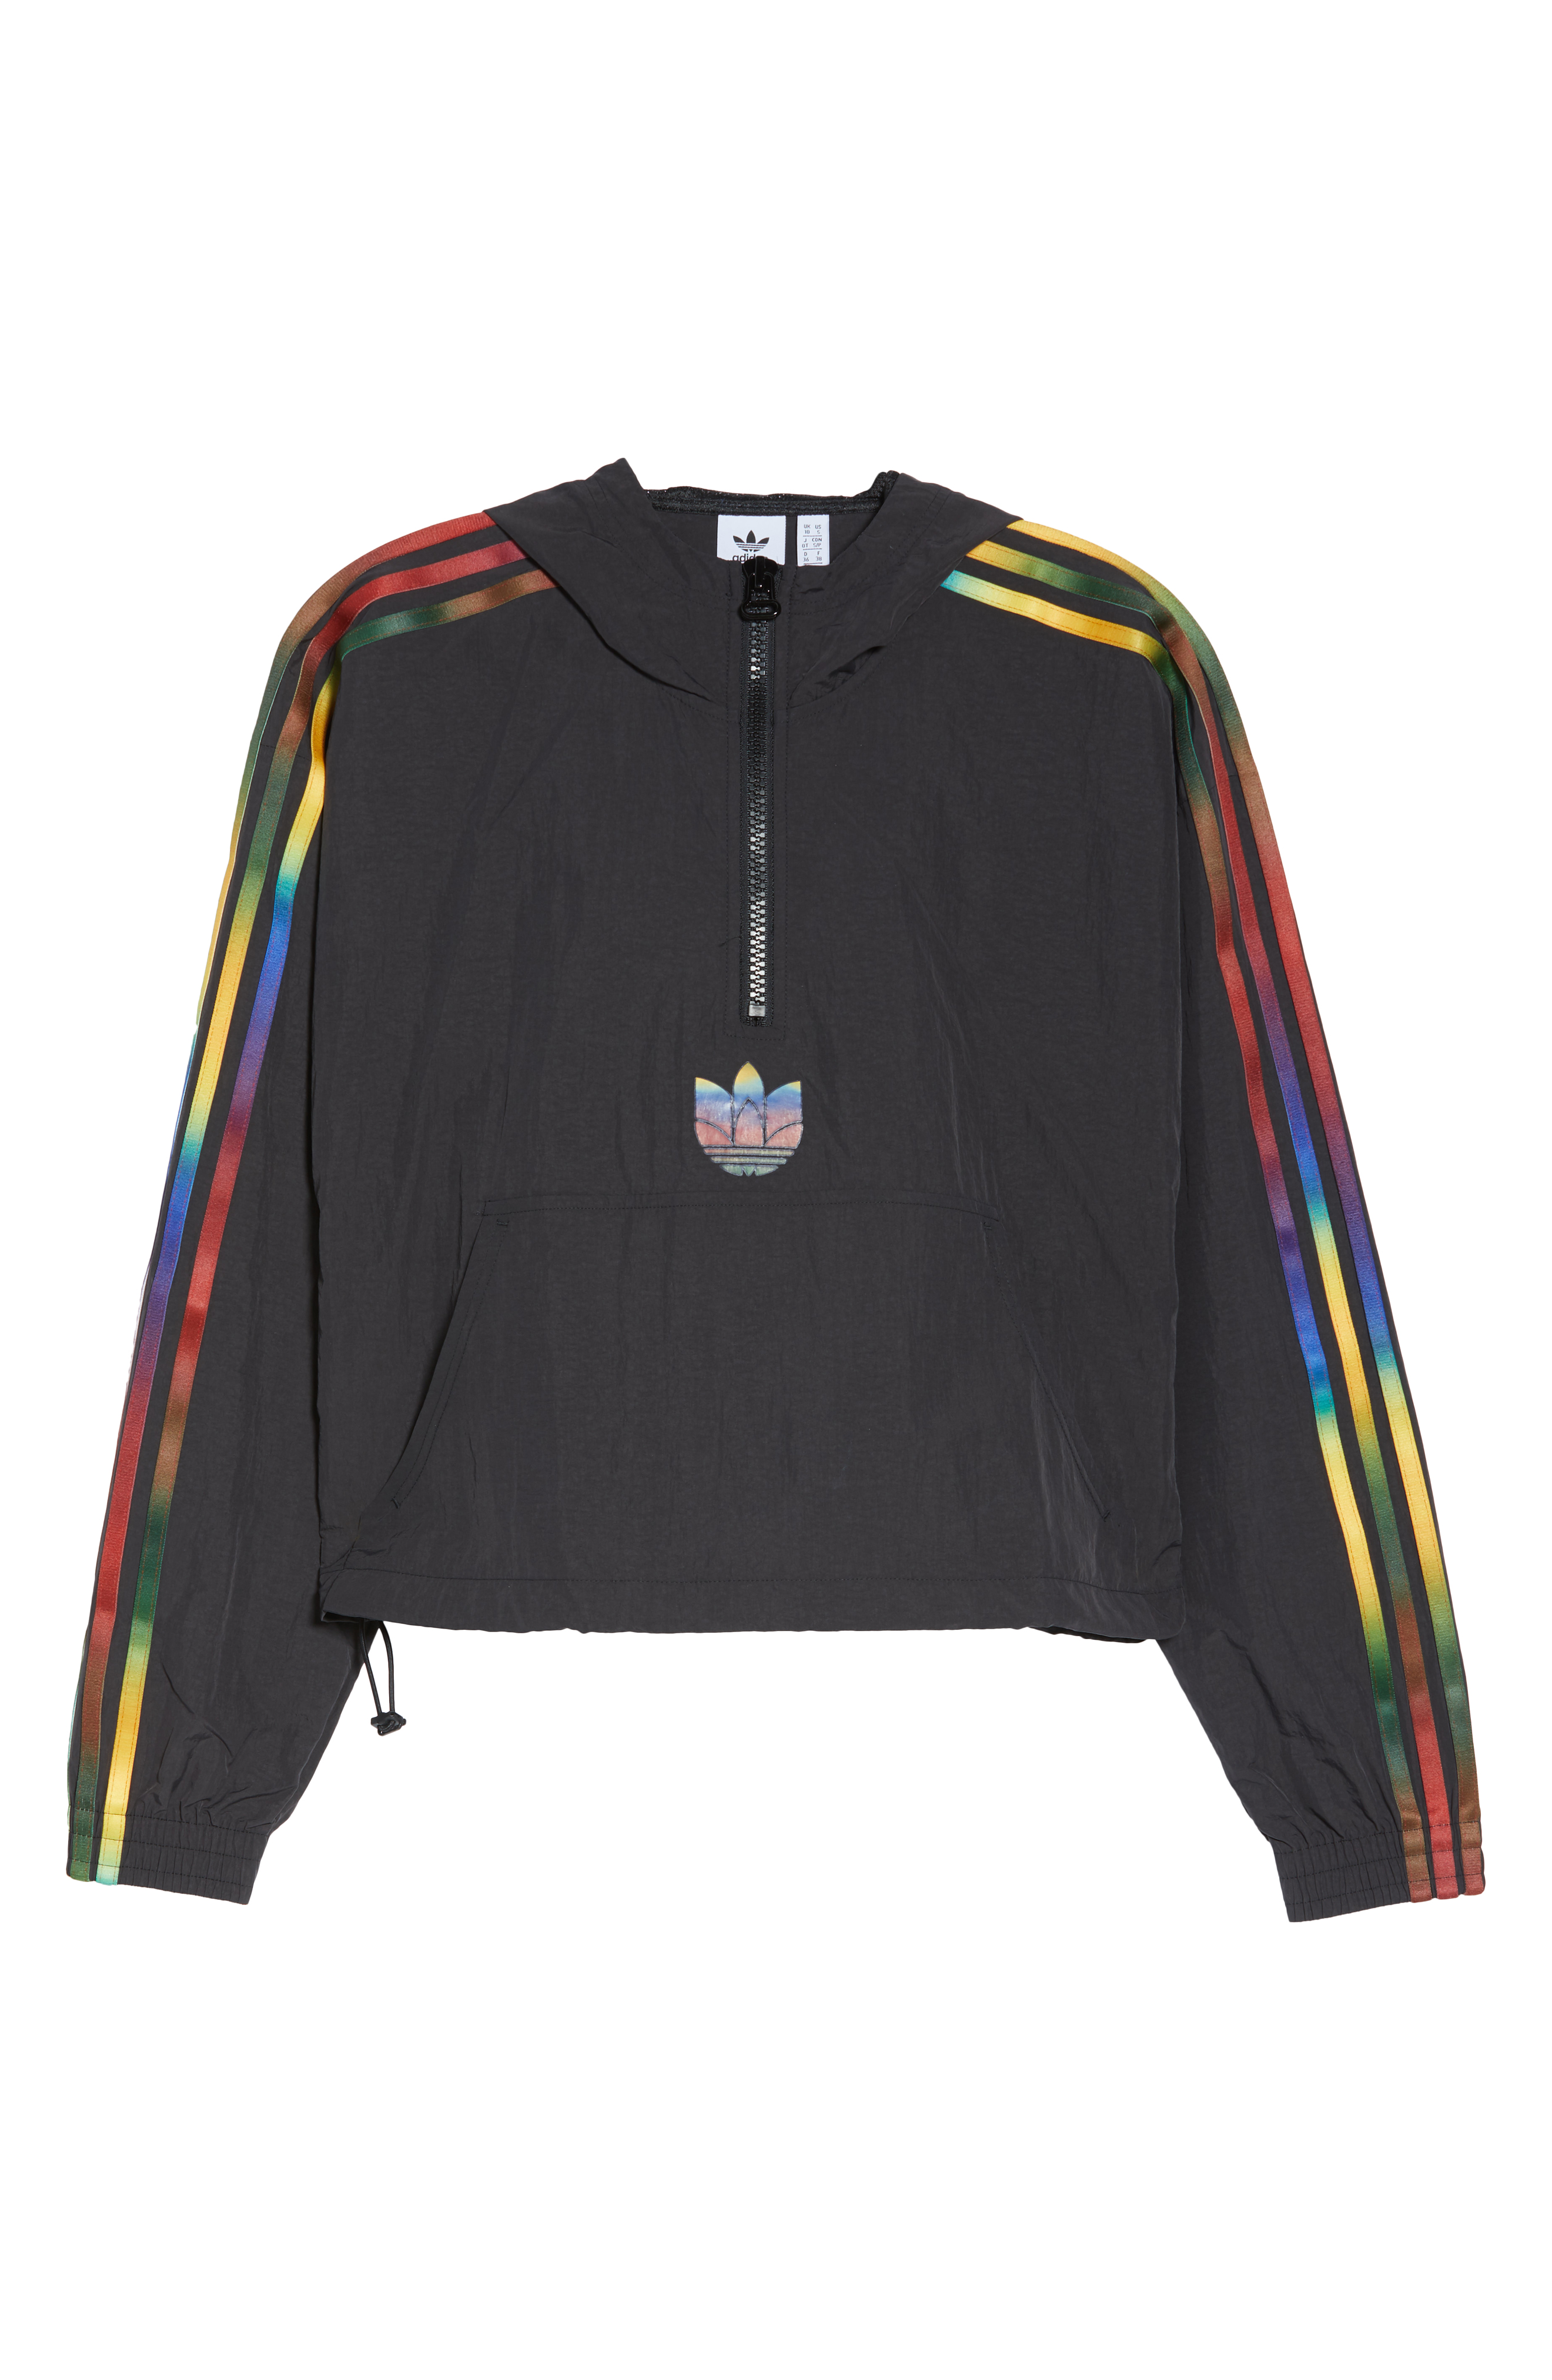 "Because you can't afford not to have this{&nbsp;}<a  href=""https://www.nordstrom.com/s/adidas-originals-crop-half-zip-hooded-pullover/5513451?origin=keywordsearch-personalizedsort&breadcrumb=Home%2FAll%20Results&color=black"" target=""_blank"" title=""https://www.nordstrom.com/s/adidas-originals-crop-half-zip-hooded-pullover/5513451?origin=keywordsearch-personalizedsort&breadcrumb=Home%2FAll%20Results&color=black"">Adidas Crop Half Zip</a>: $46.90 (after Sale $70) (Image: Nordstrom)"